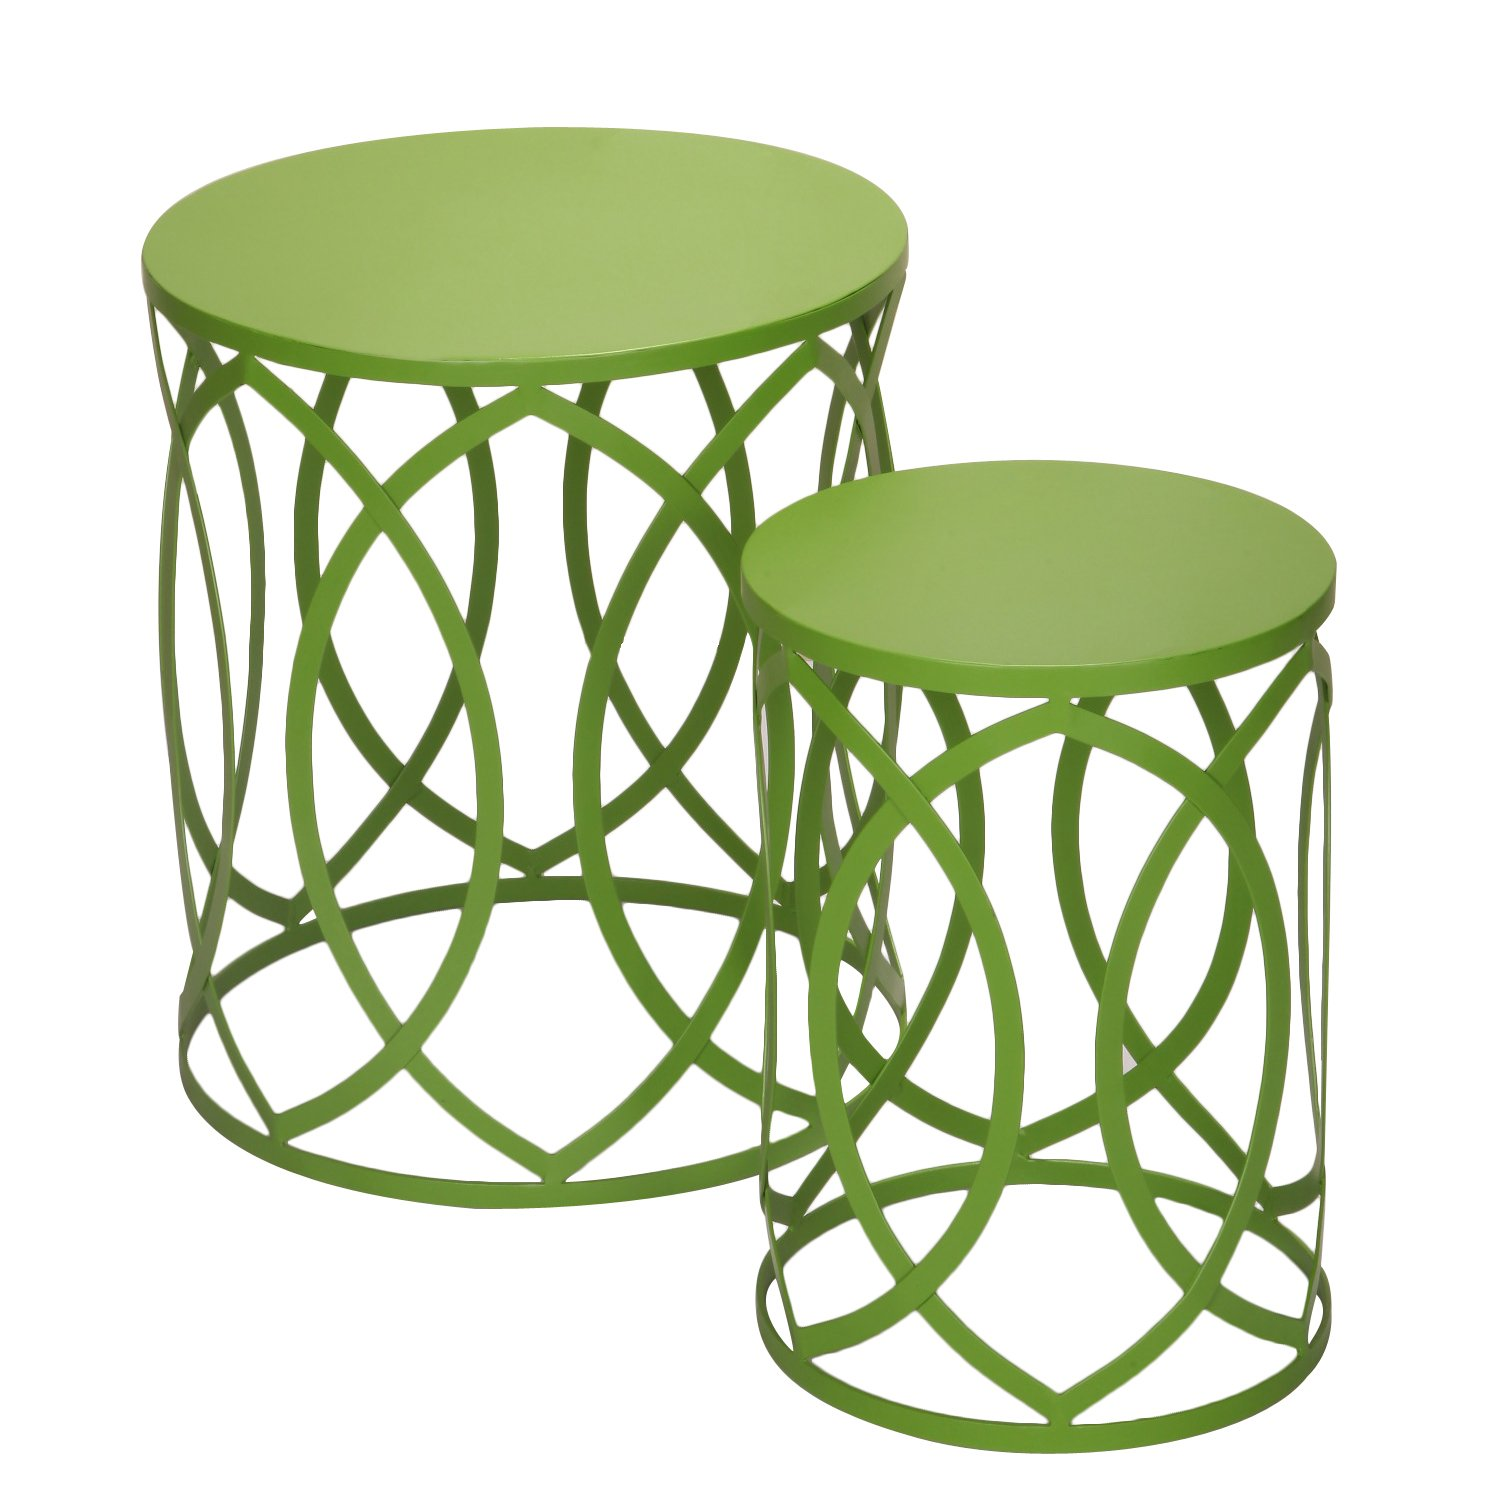 Amazon.com: Accent Round Iron Nesting Tables/Stools, Interlocking Oval  Pattern, Khaki Green (Set Of 2): Kitchen U0026 Dining